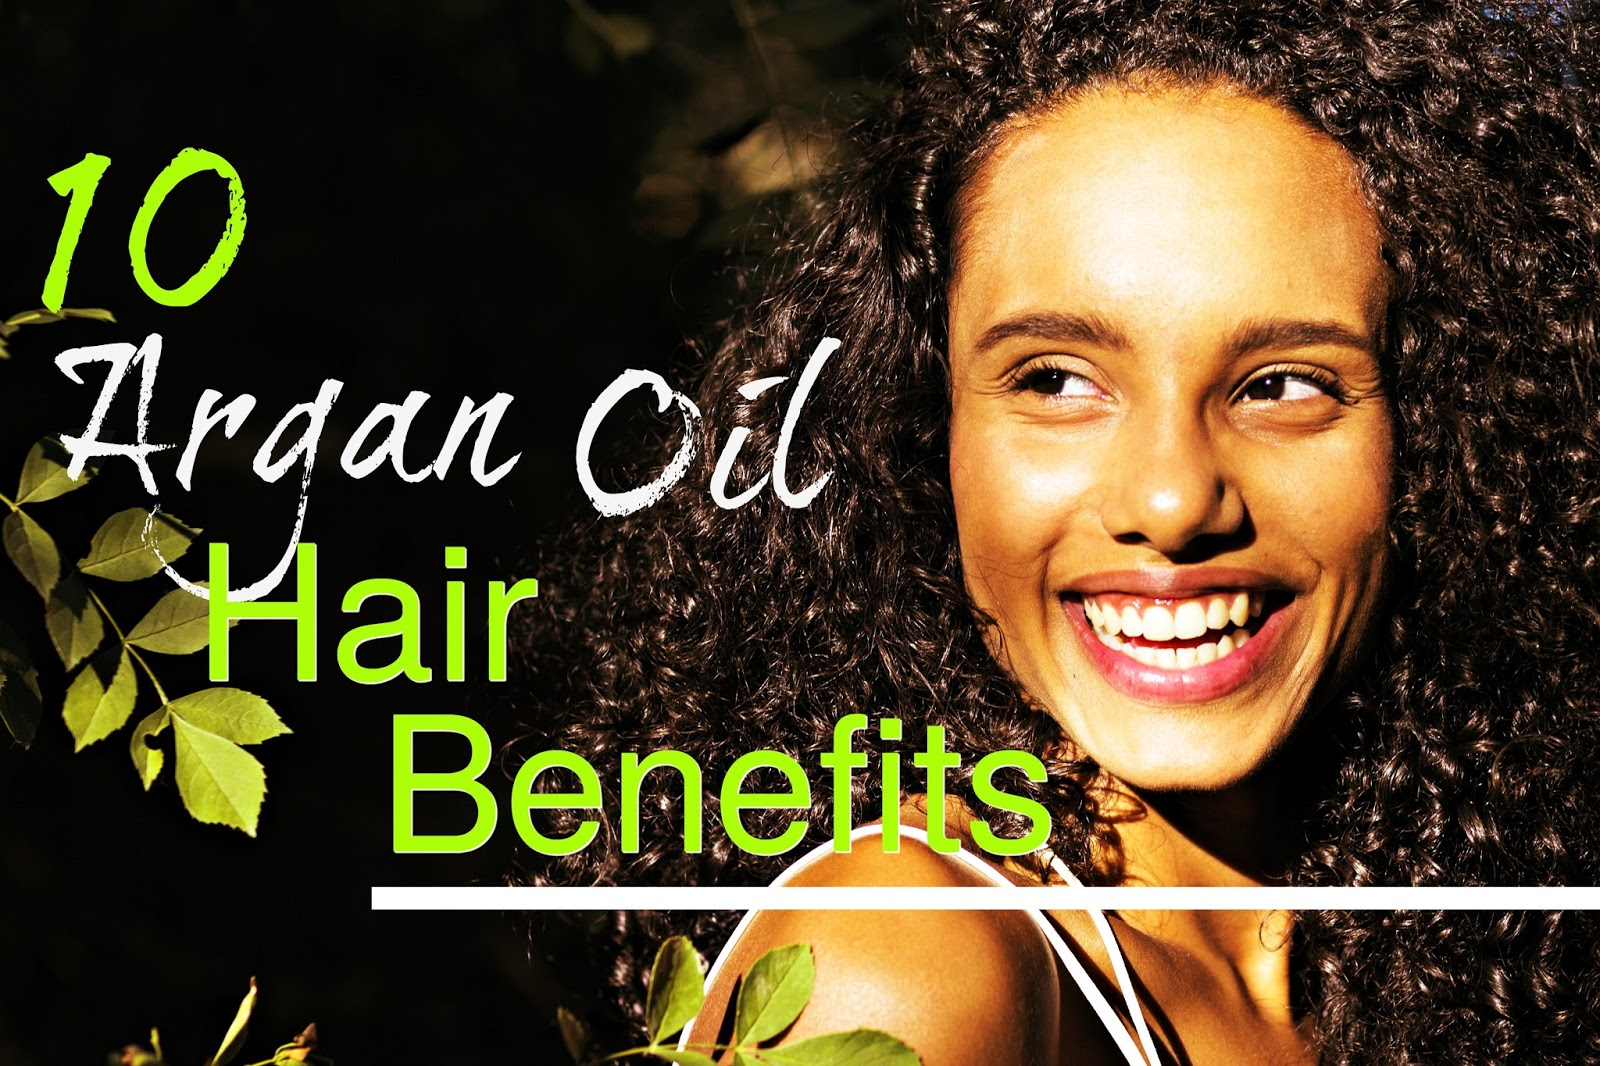 10 Argan Oil Benefits For Hair You Didn't Know You Needed! From anti aging to hair growth, Argan oil is great for natural hair.